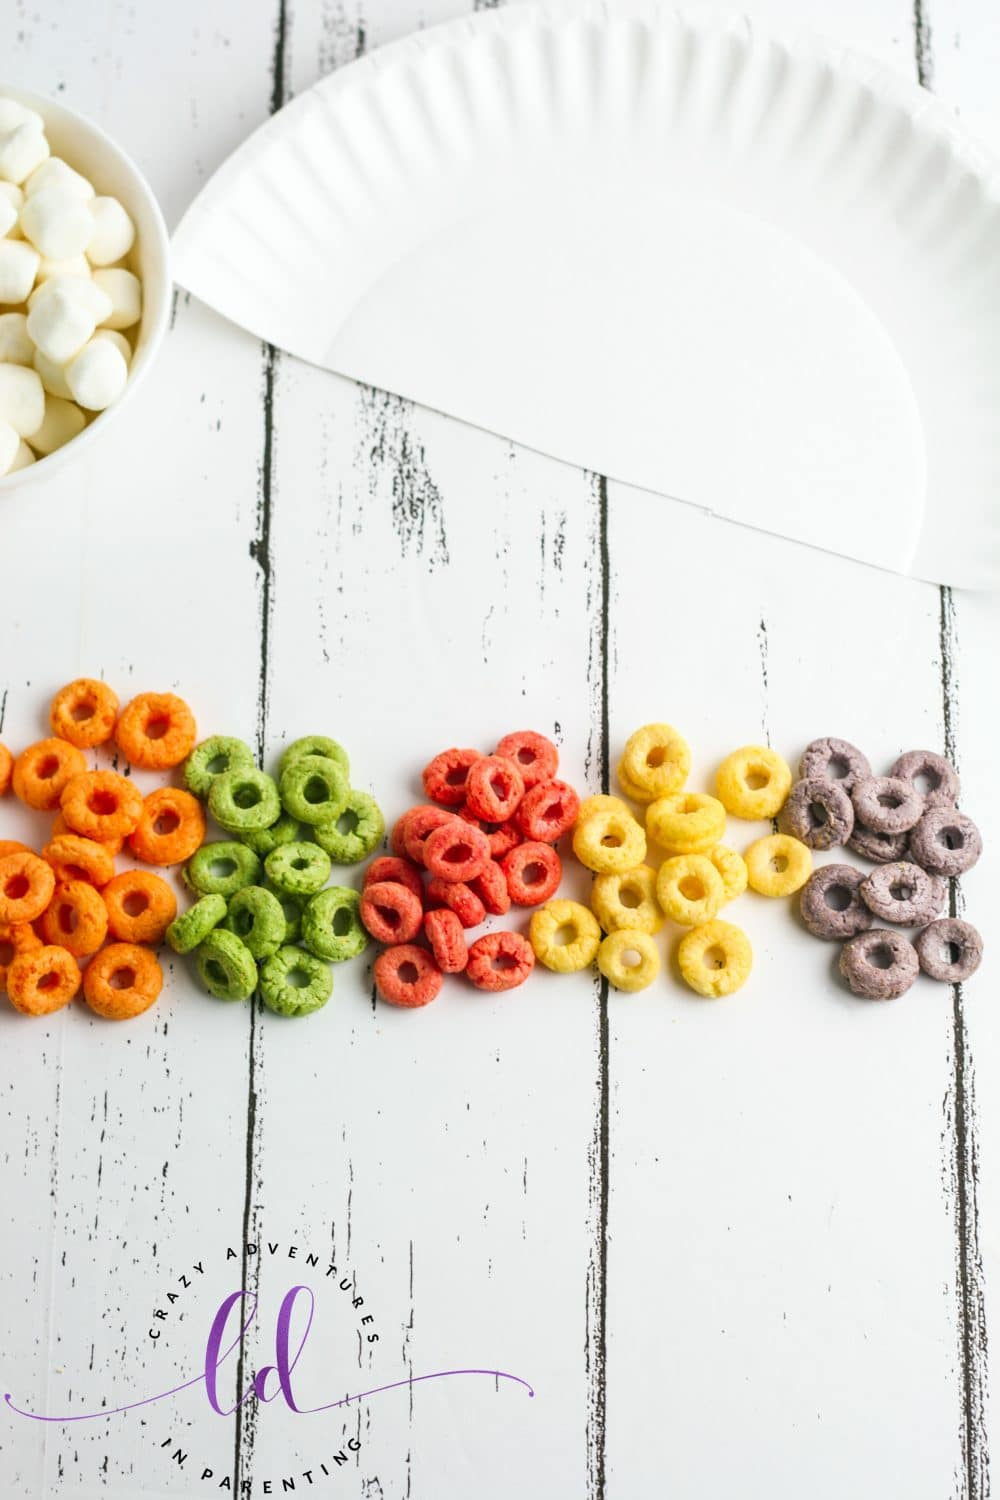 Separate Cereal into Colors for Cereal Rainbow Craft